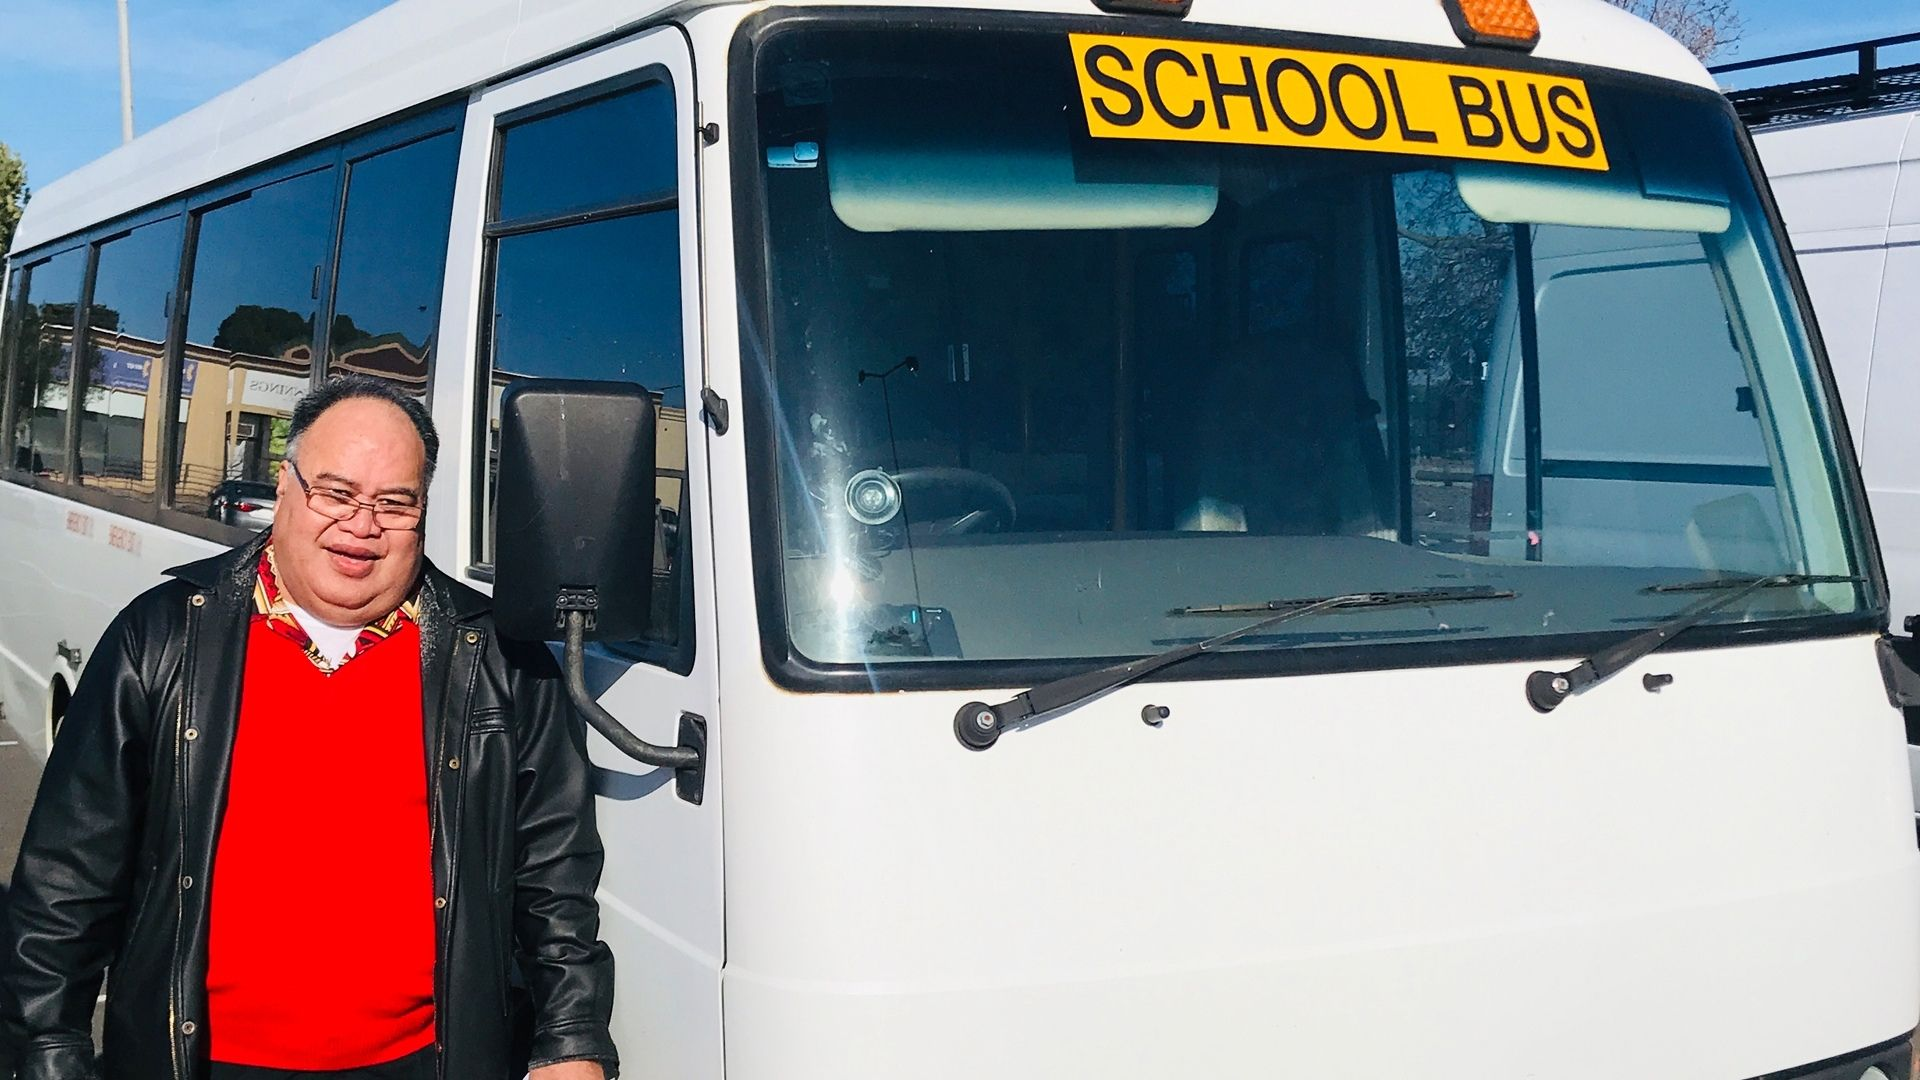 Fea stands beside the bus he drives. He is wearing a bright red jumper and smiling at the camera